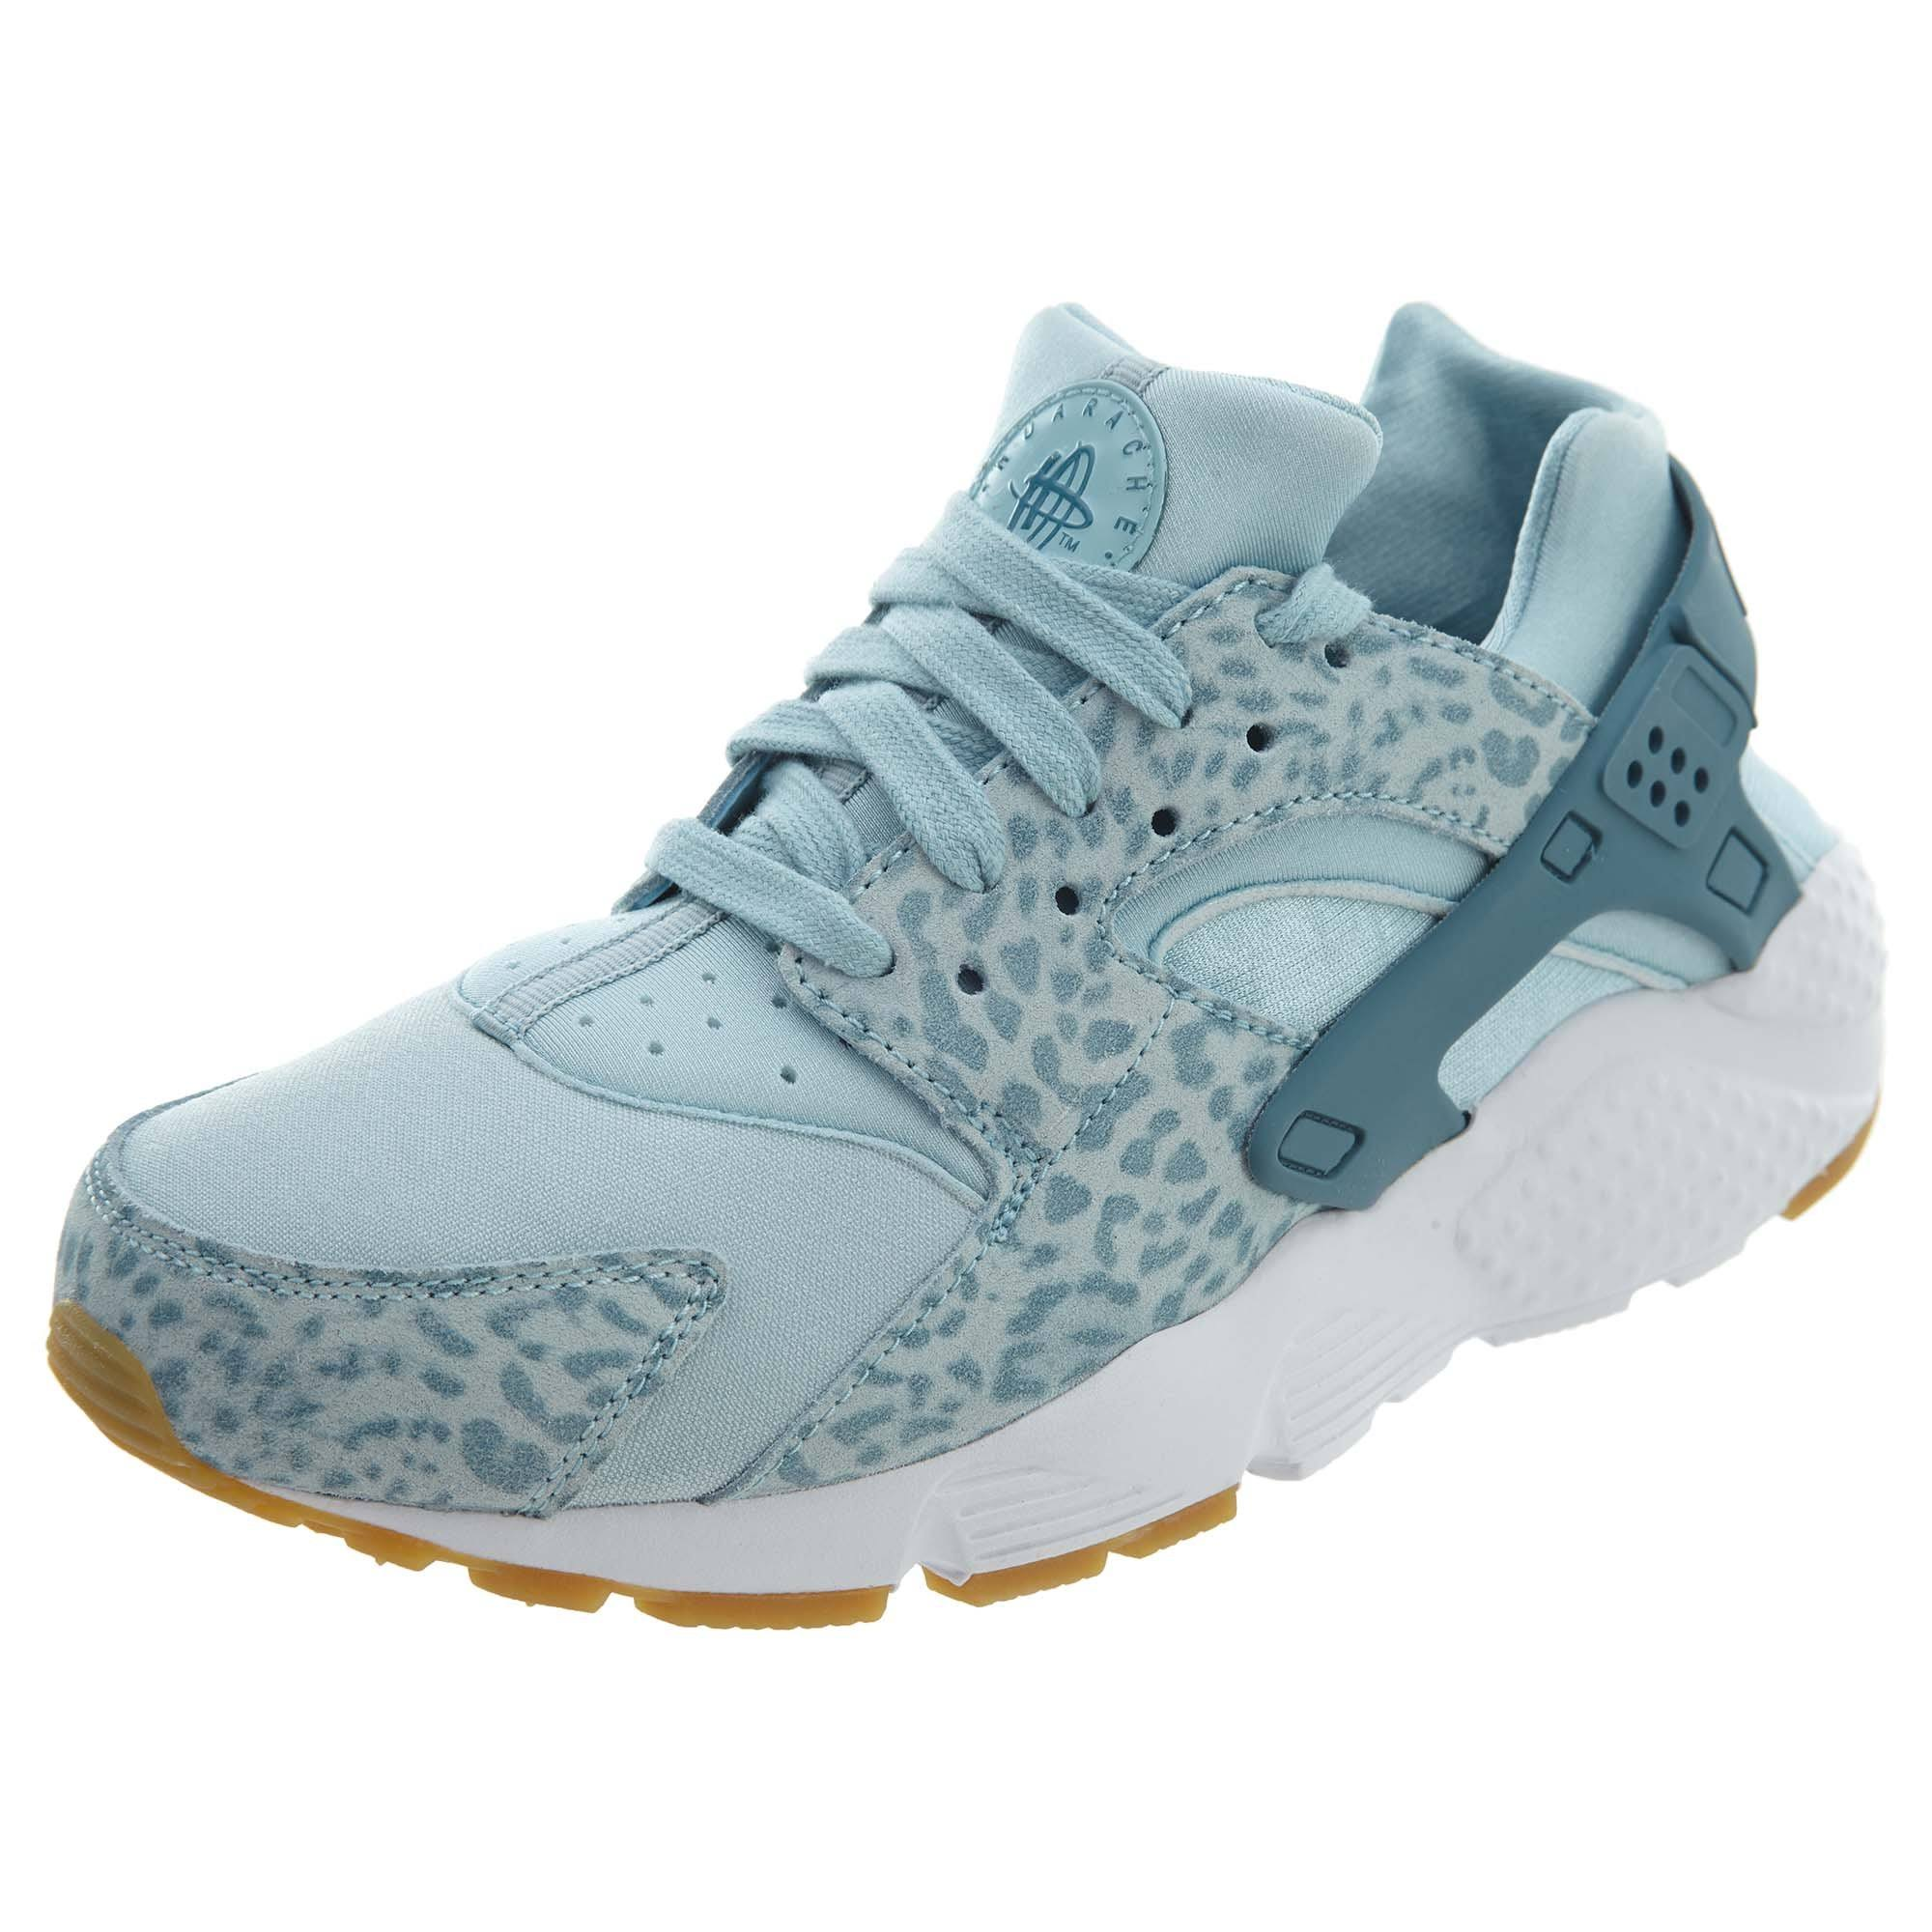 Shoes Size Girls 7 904538400 Huarache Grade Run Nike 0 School X40anw